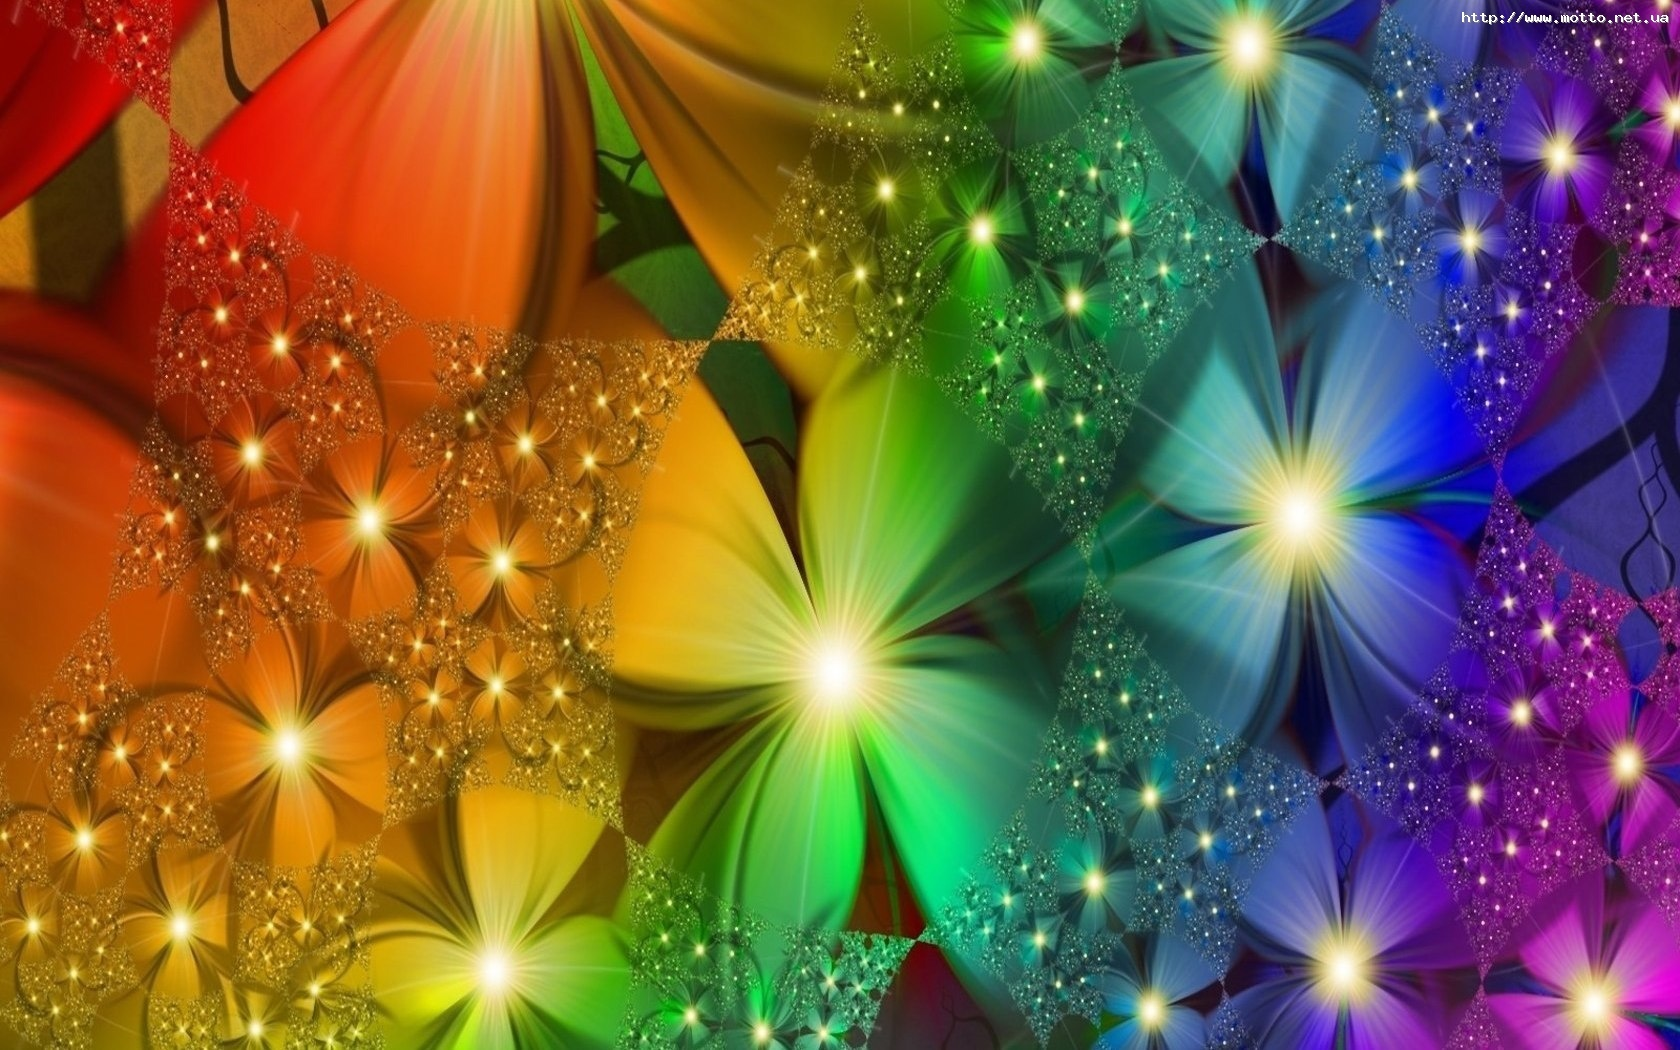 9746 Wallpapers and Background images on your desktop. Download Background, Abstract, Rainbow pictures on PC for free